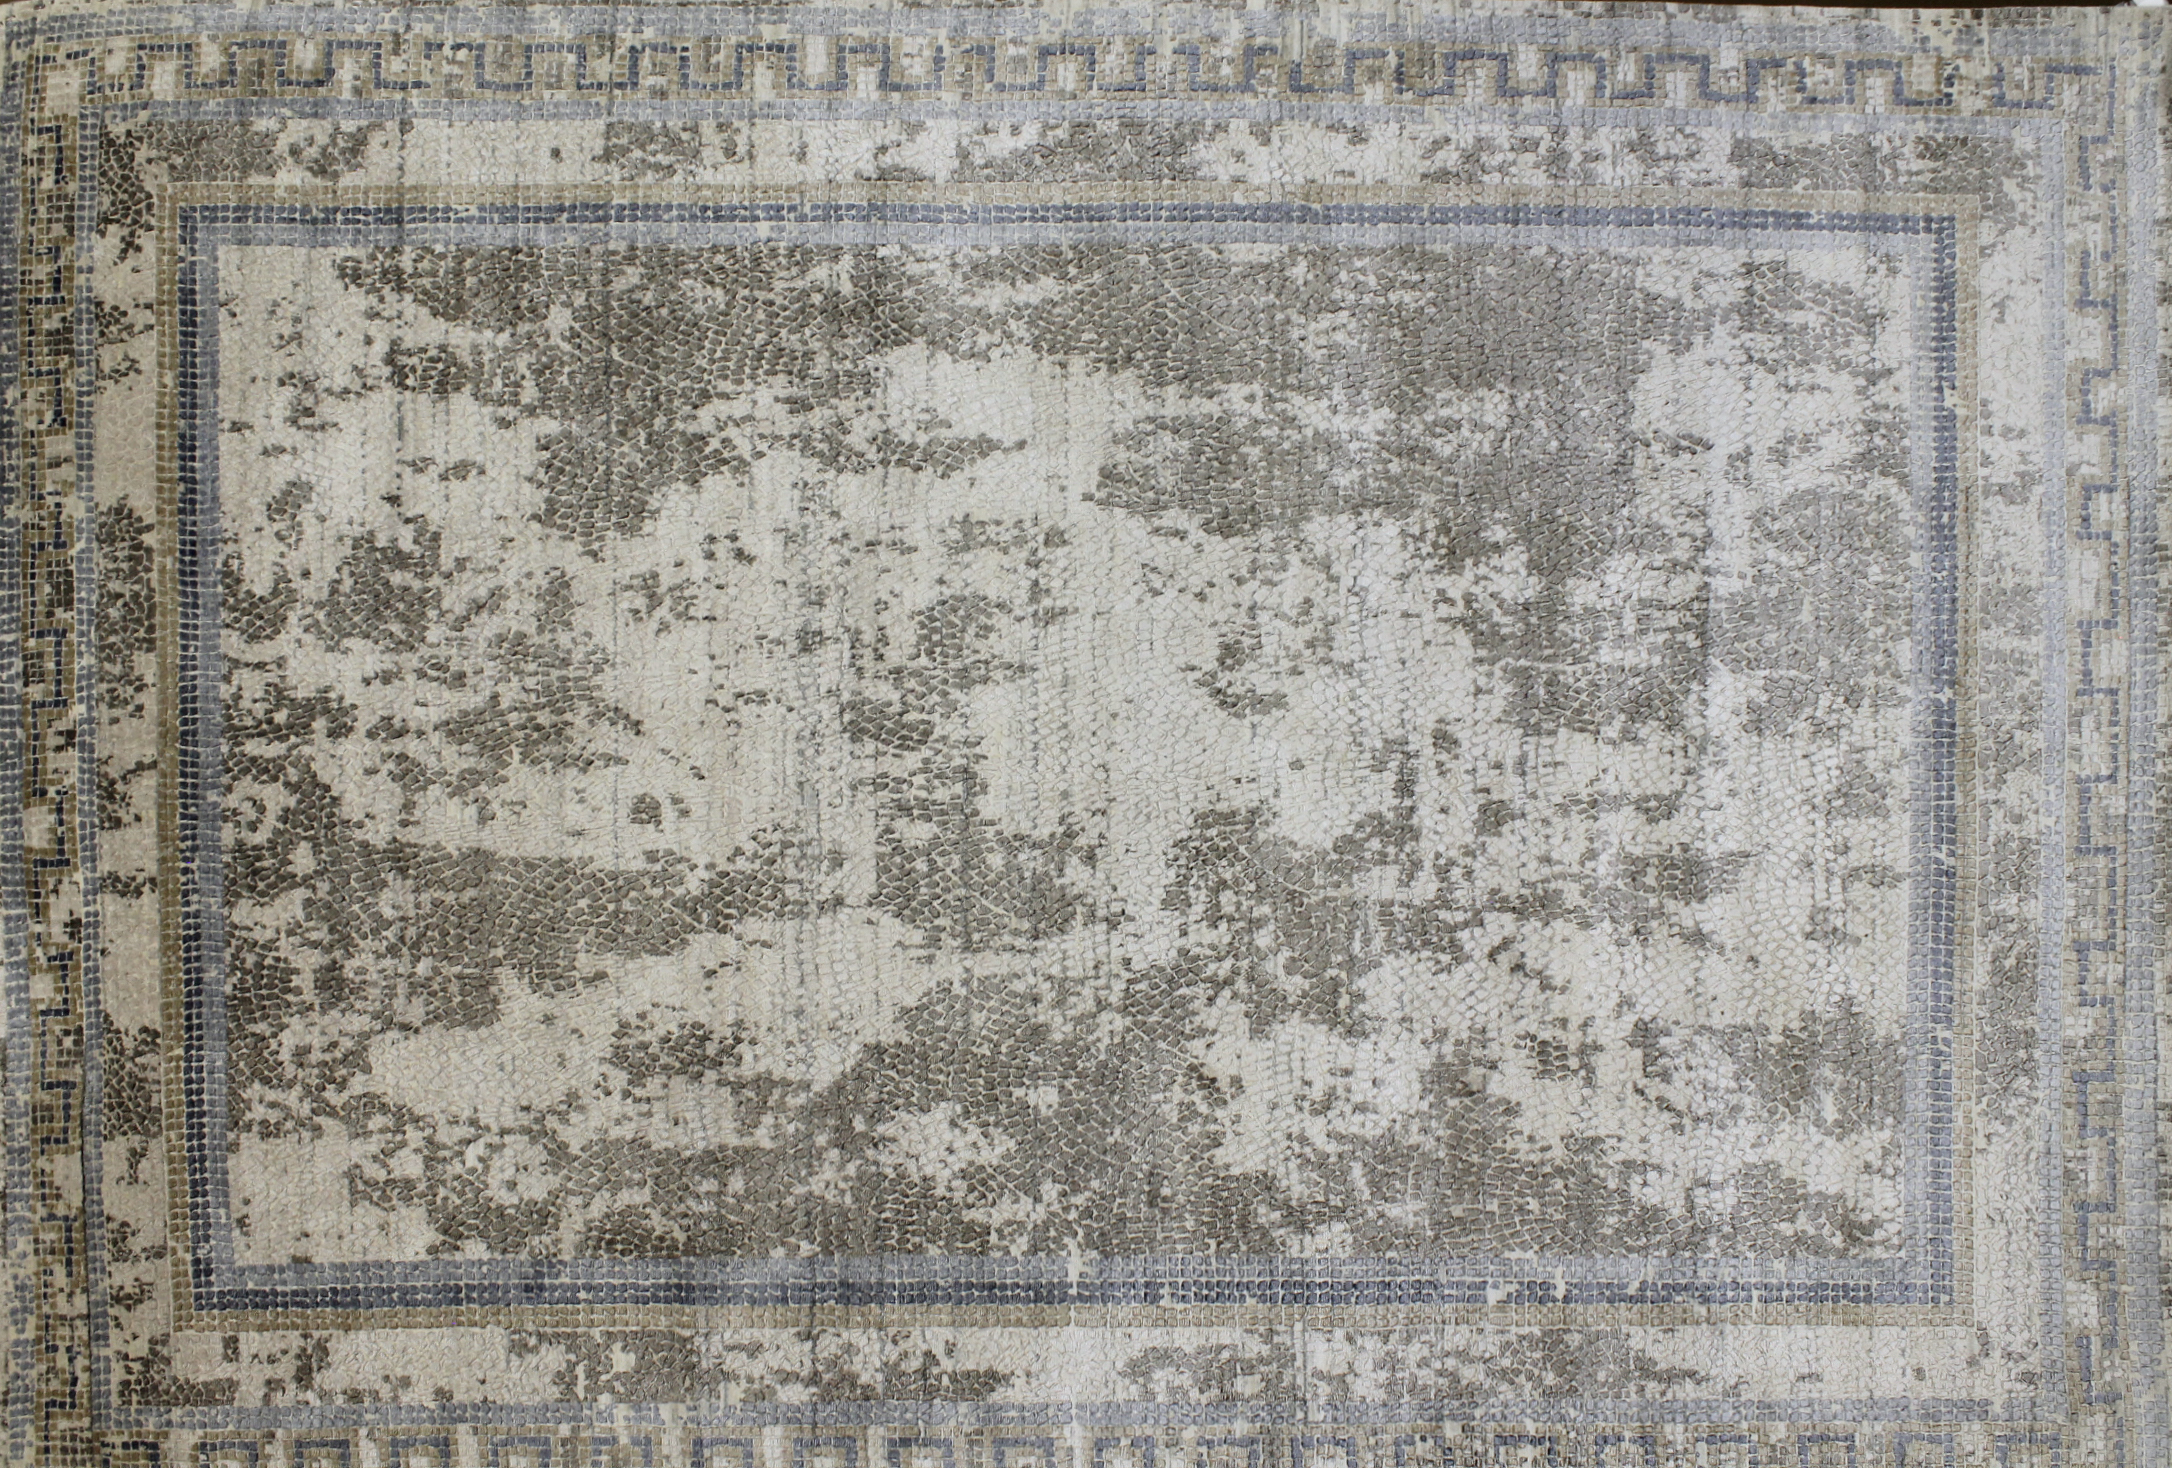 10x14 Transitional Hand Knotted Wool & Viscose Area Rug - MR022667